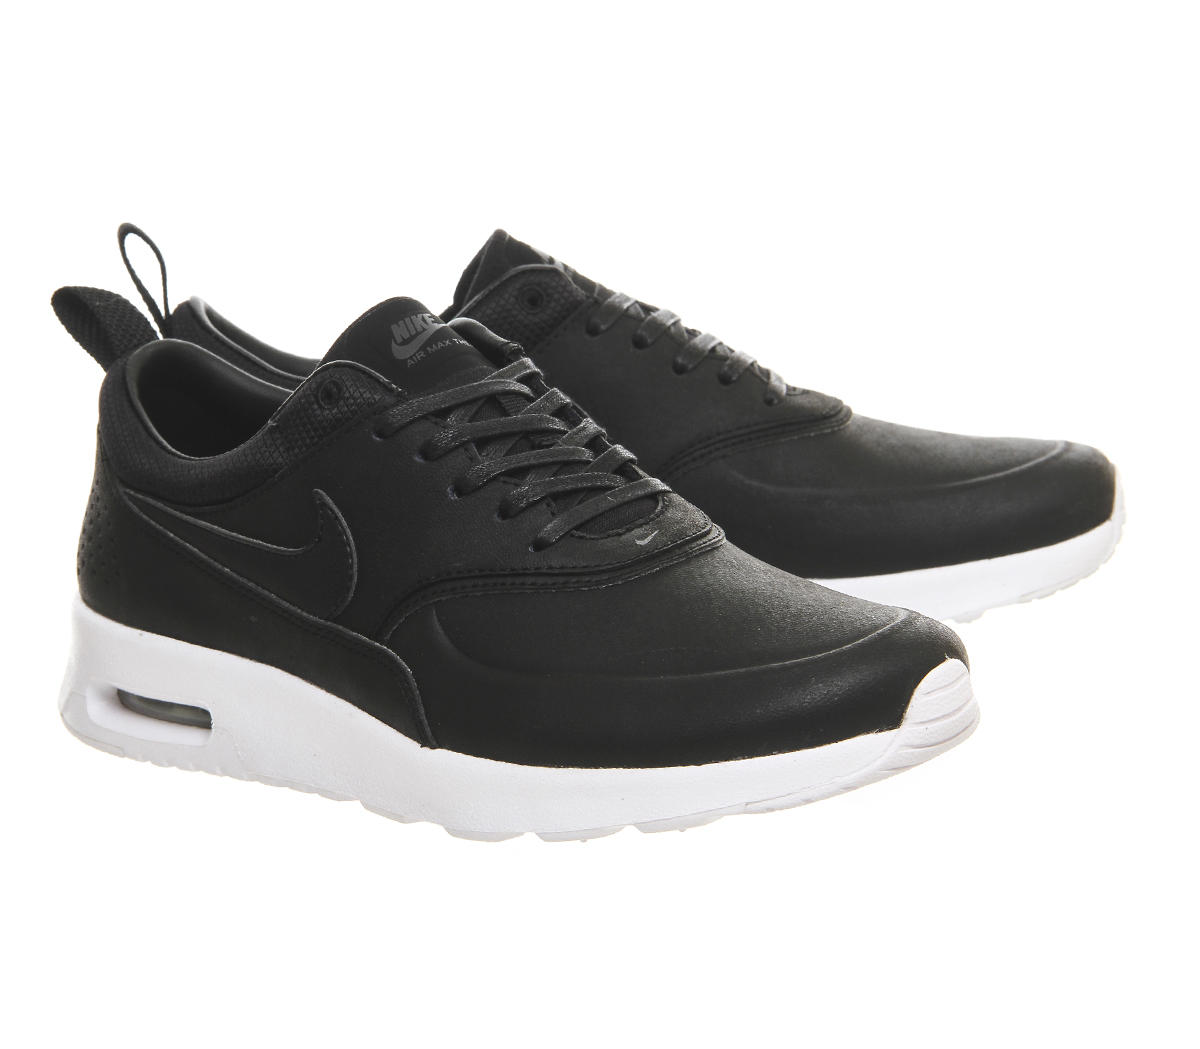 Nike Air Max Thea Black Black Anthracite from OFFICE 1f54b751c8